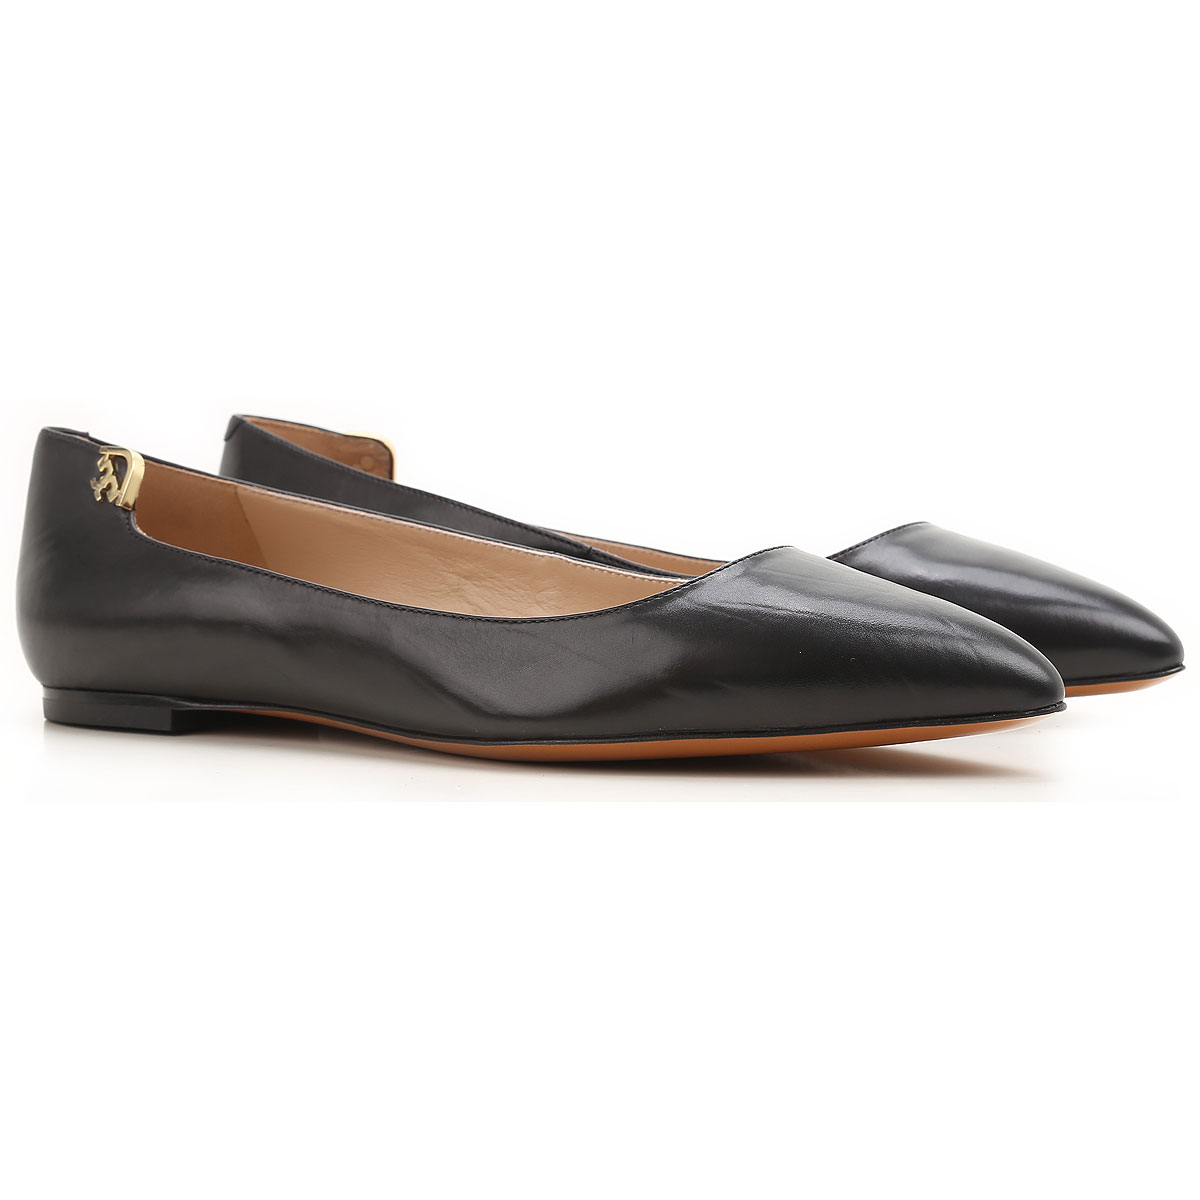 Image of Tory Burch Ballet Flats Ballerina Shoes for Women, Black, Leather, 2017, 10 6.5 7